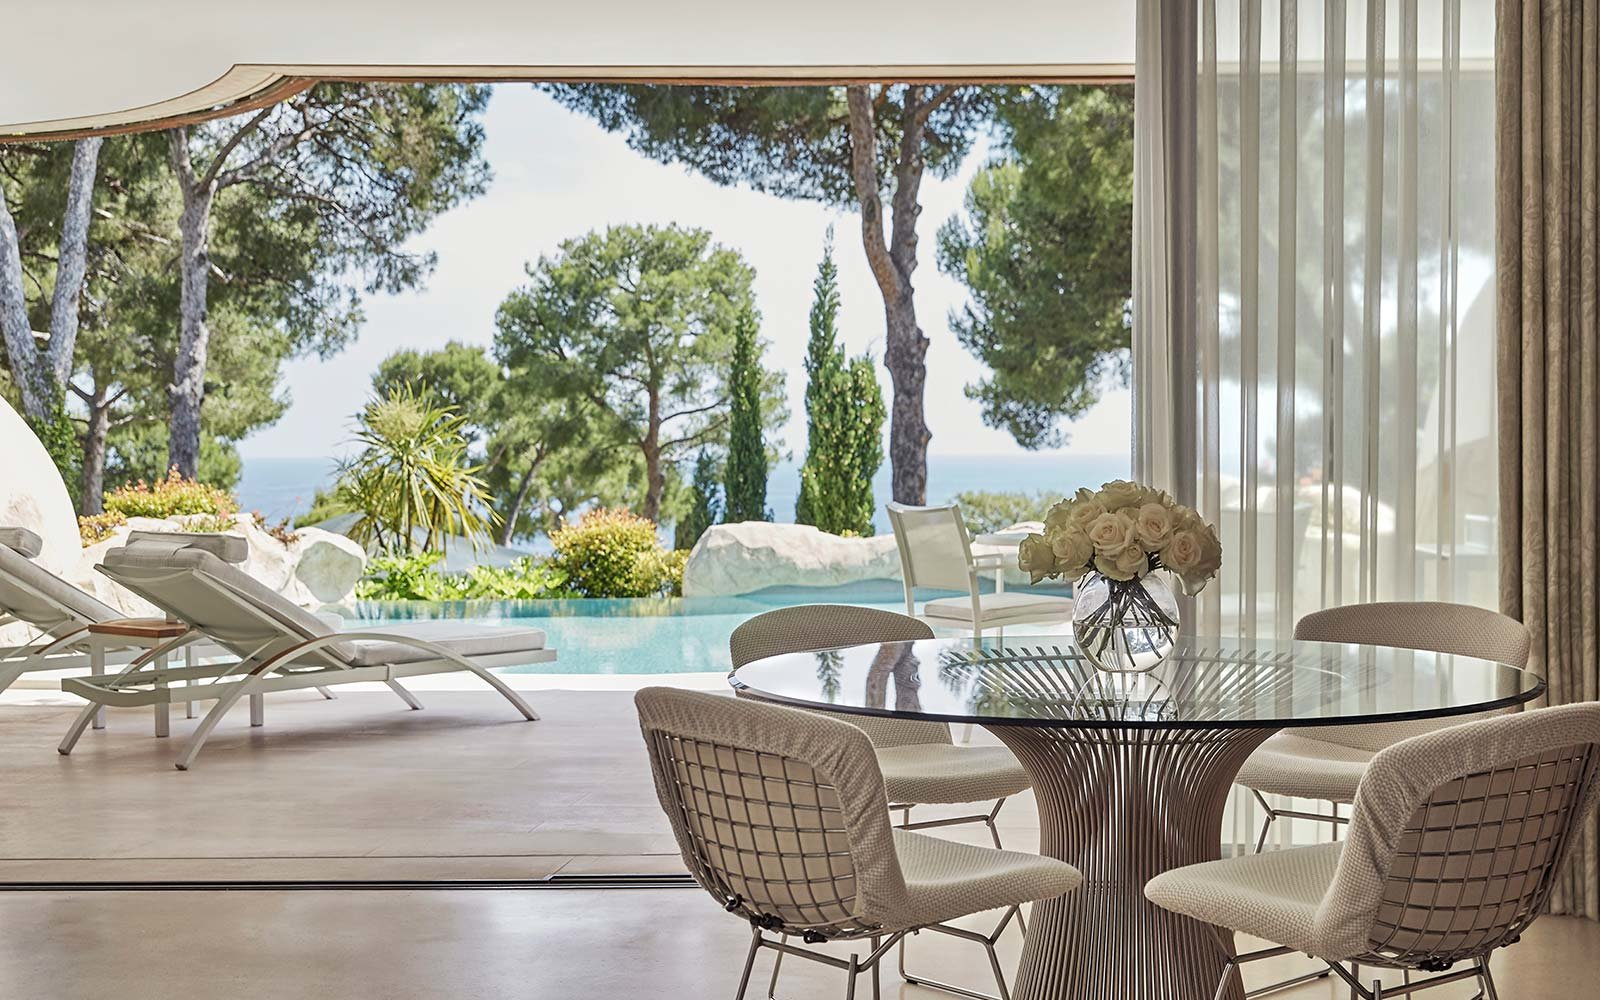 1. Grand-Hôtel du Cap-Ferrat, a Four Seasons Resort, St.-Jean-Cap-Ferrat